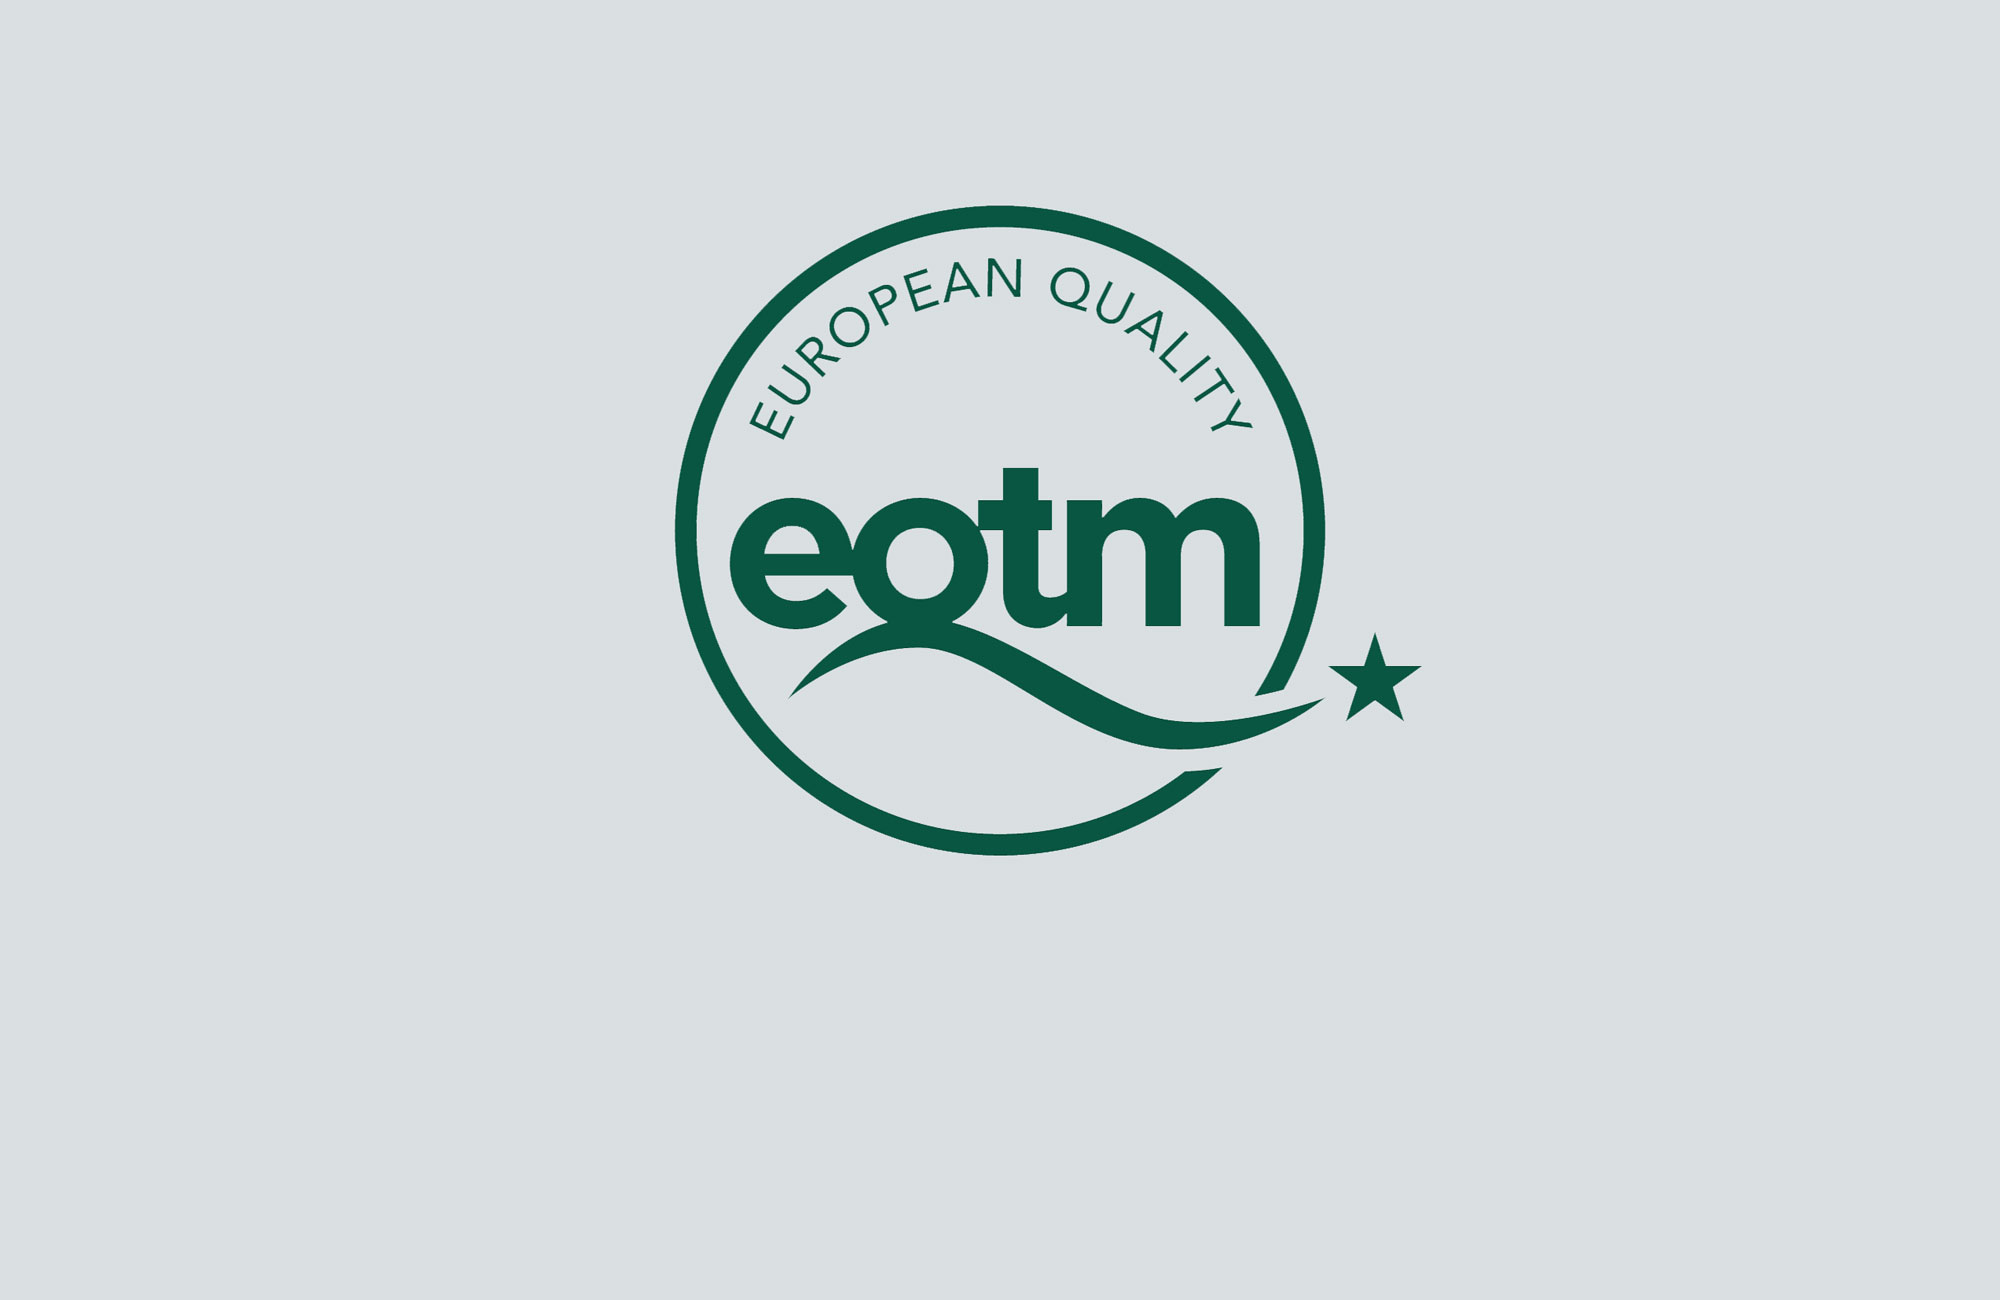 The European Quality Trademark (EQTM)  certificates awarded, follow each other in quick succession.